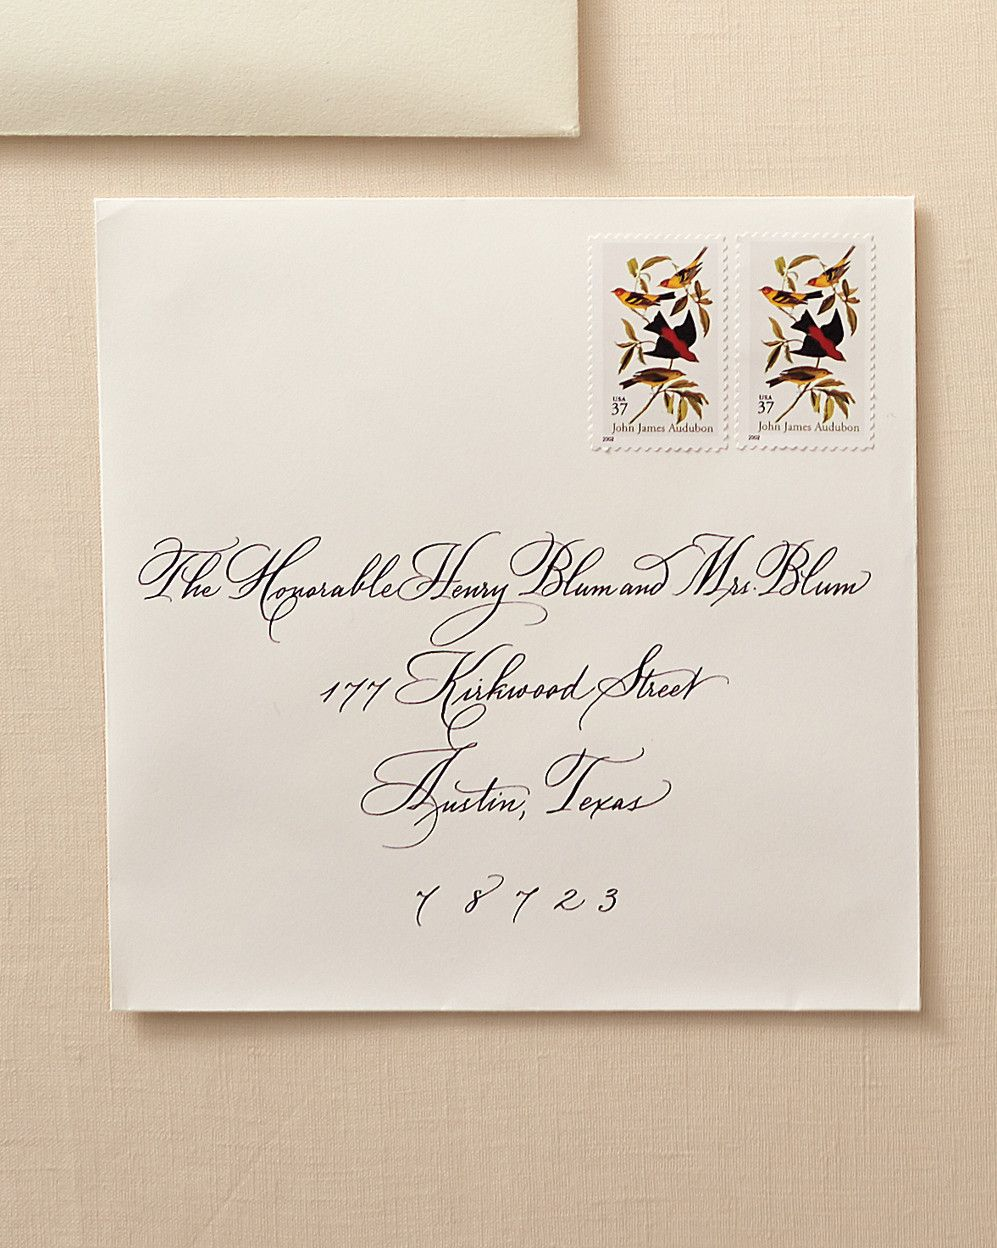 How To Address Guests On Wedding Invitation Envelopes Wedding Invitation Envelopes Handwritten Wedding Invitations Addressing Wedding Invitations